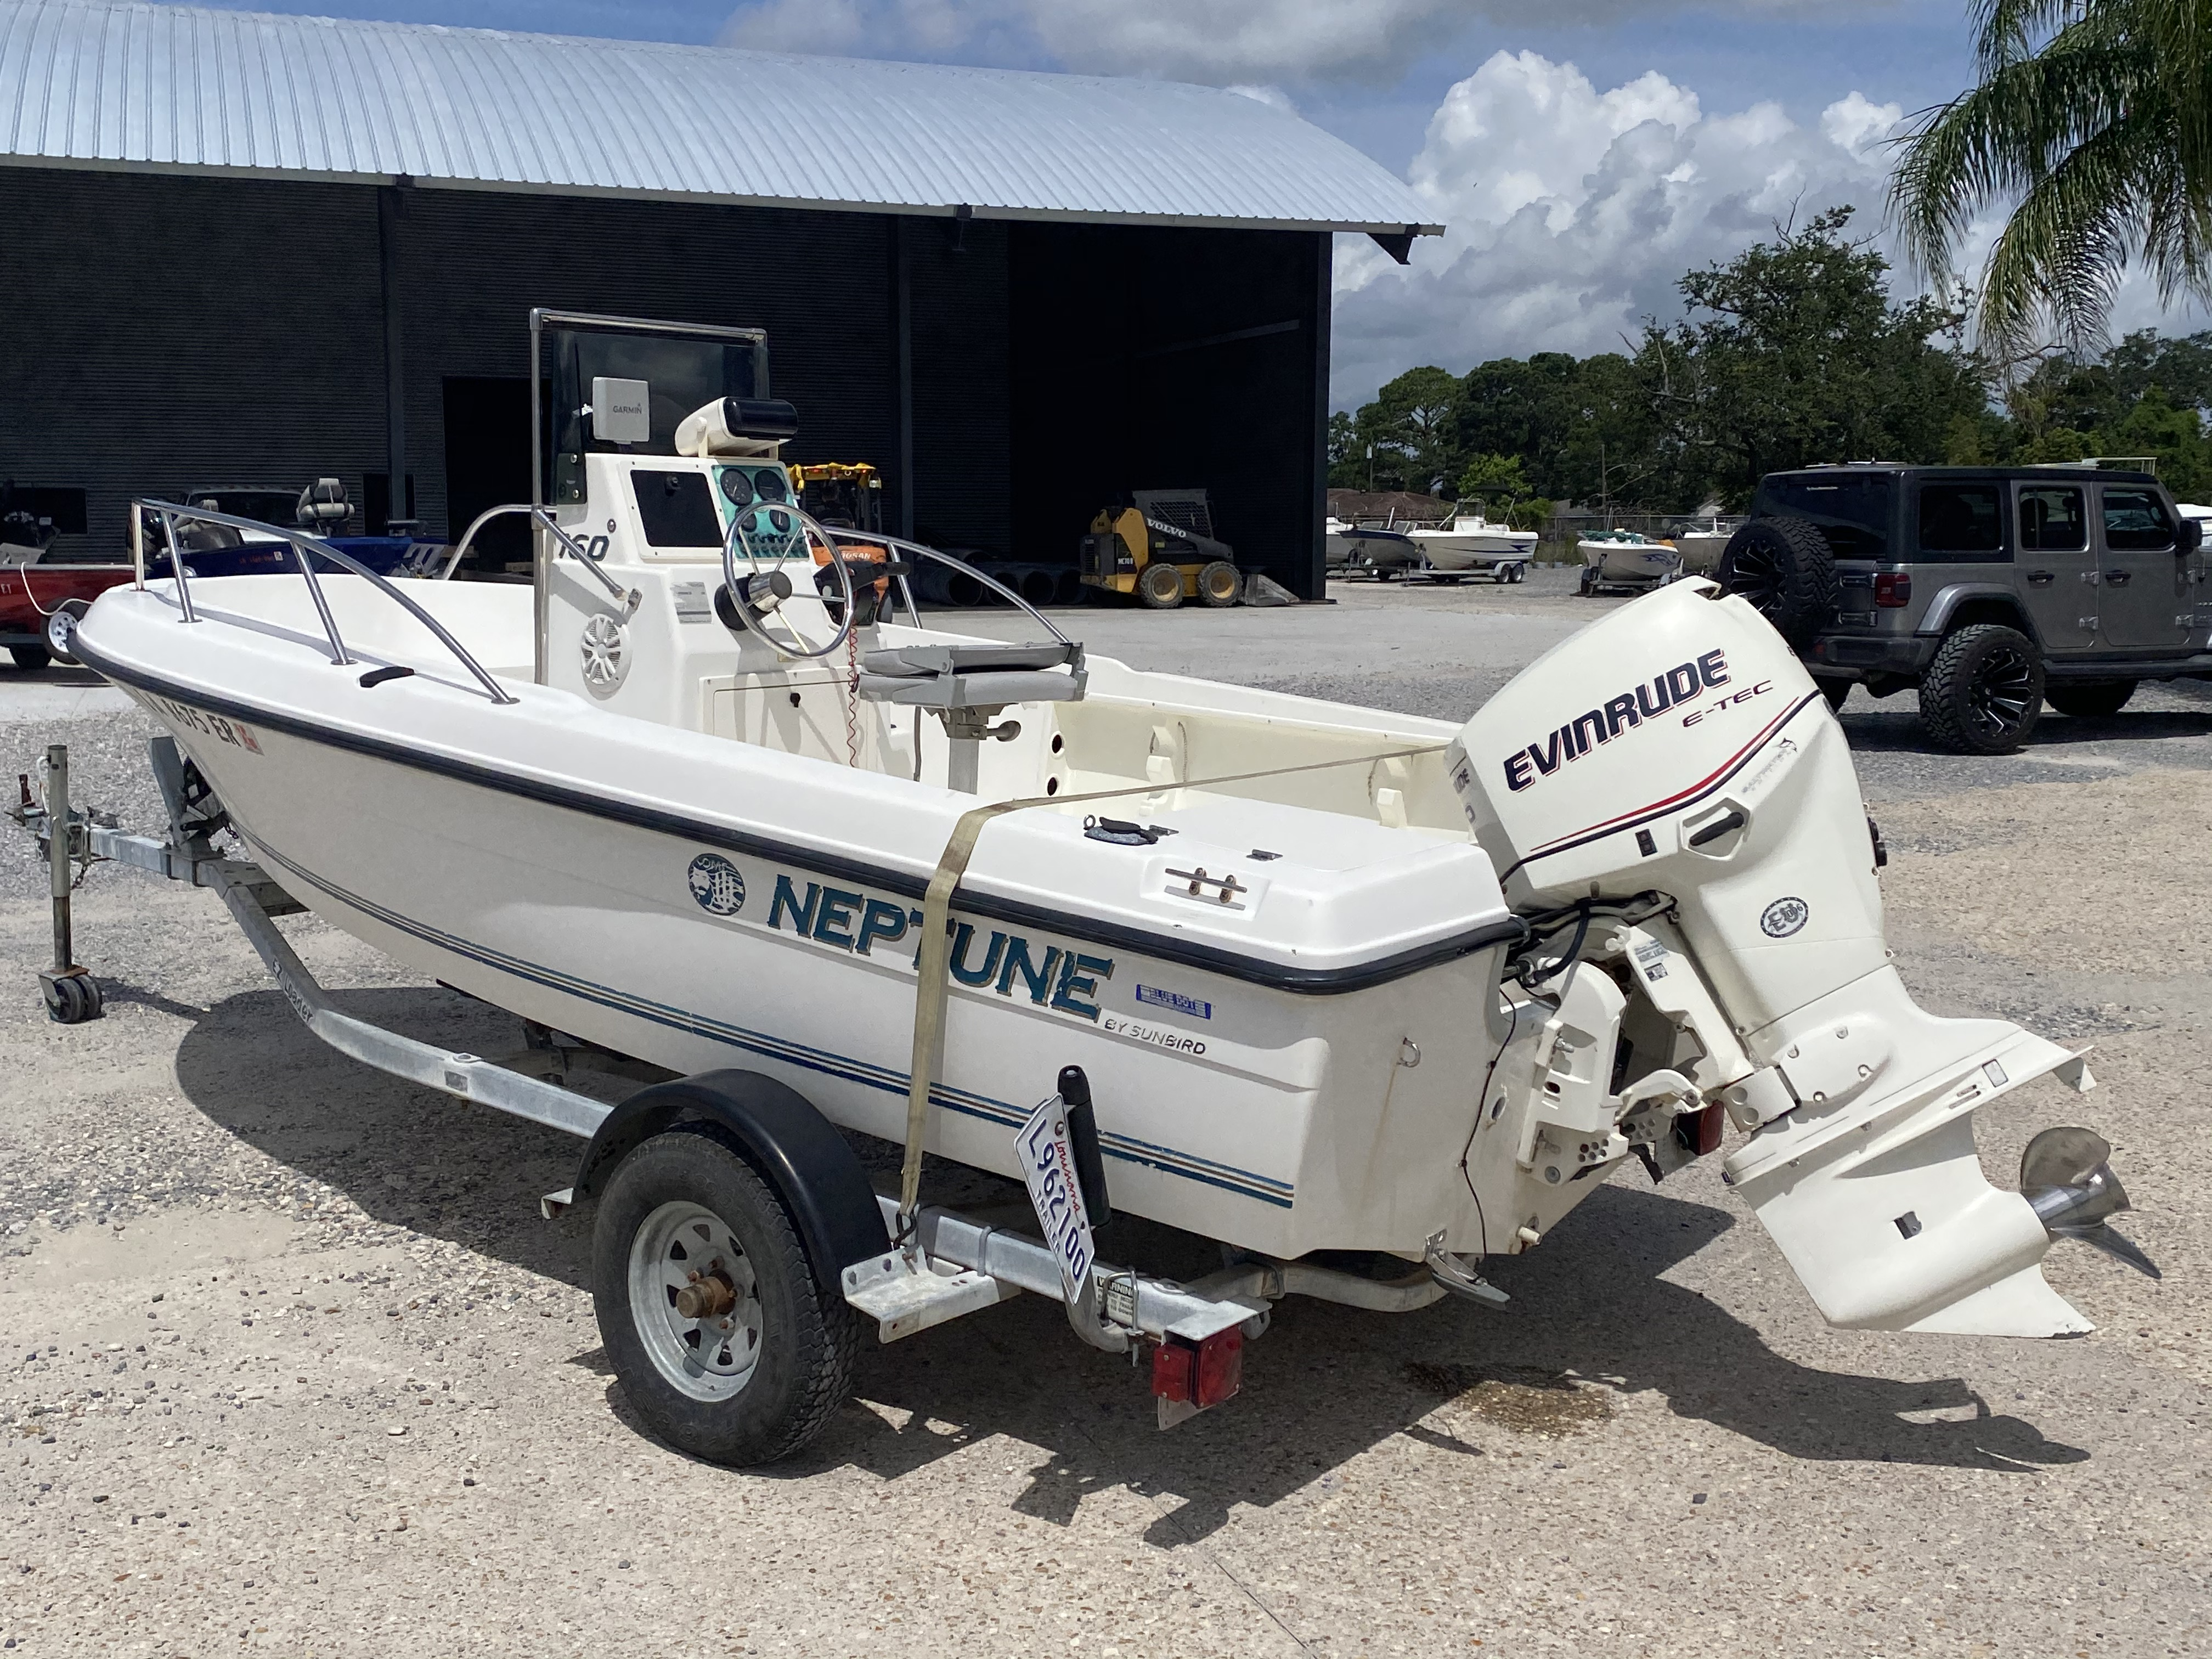 1996 Sunbird boat for sale, model of the boat is Neptune 160 & Image # 3 of 14